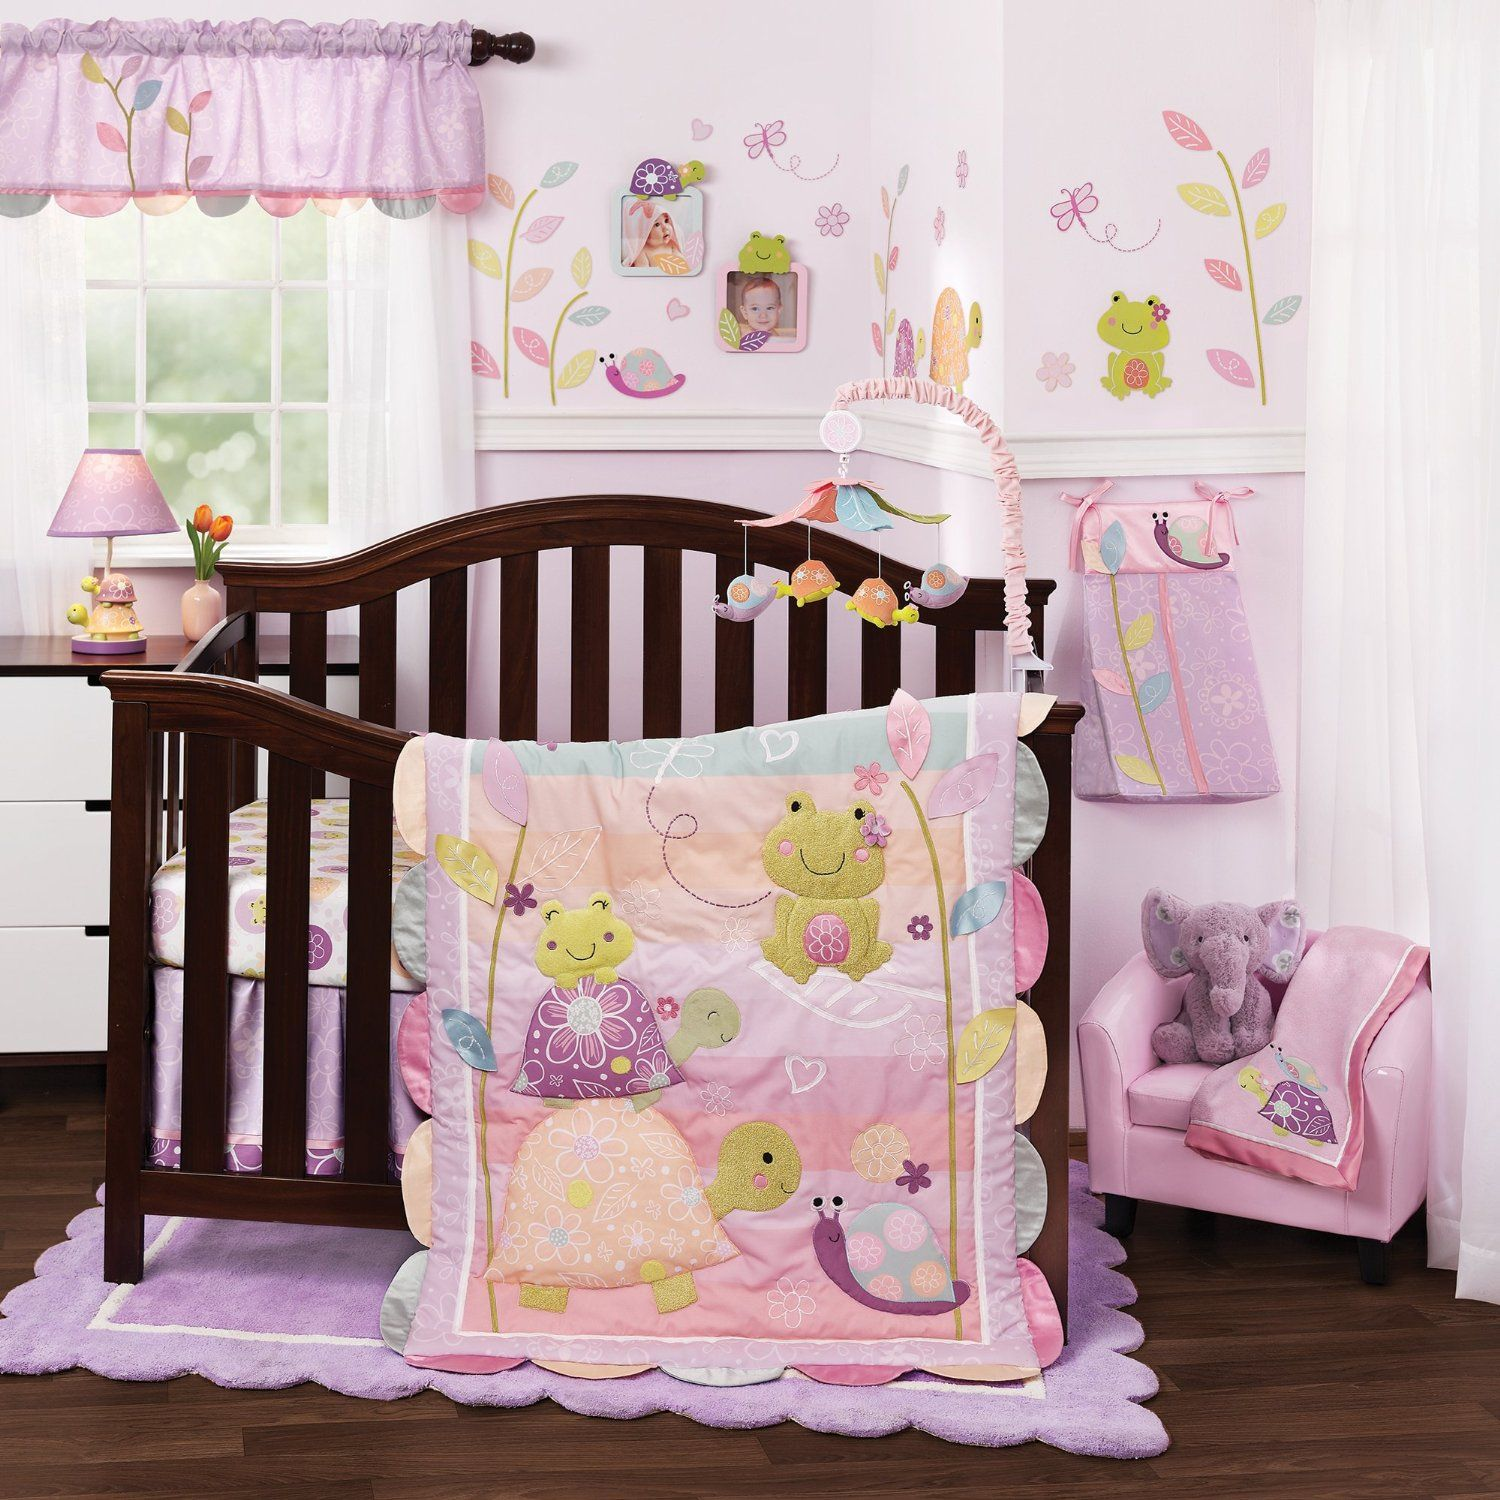 Lambs And Ivy Puddles Baby Bedding Nursery Accessories